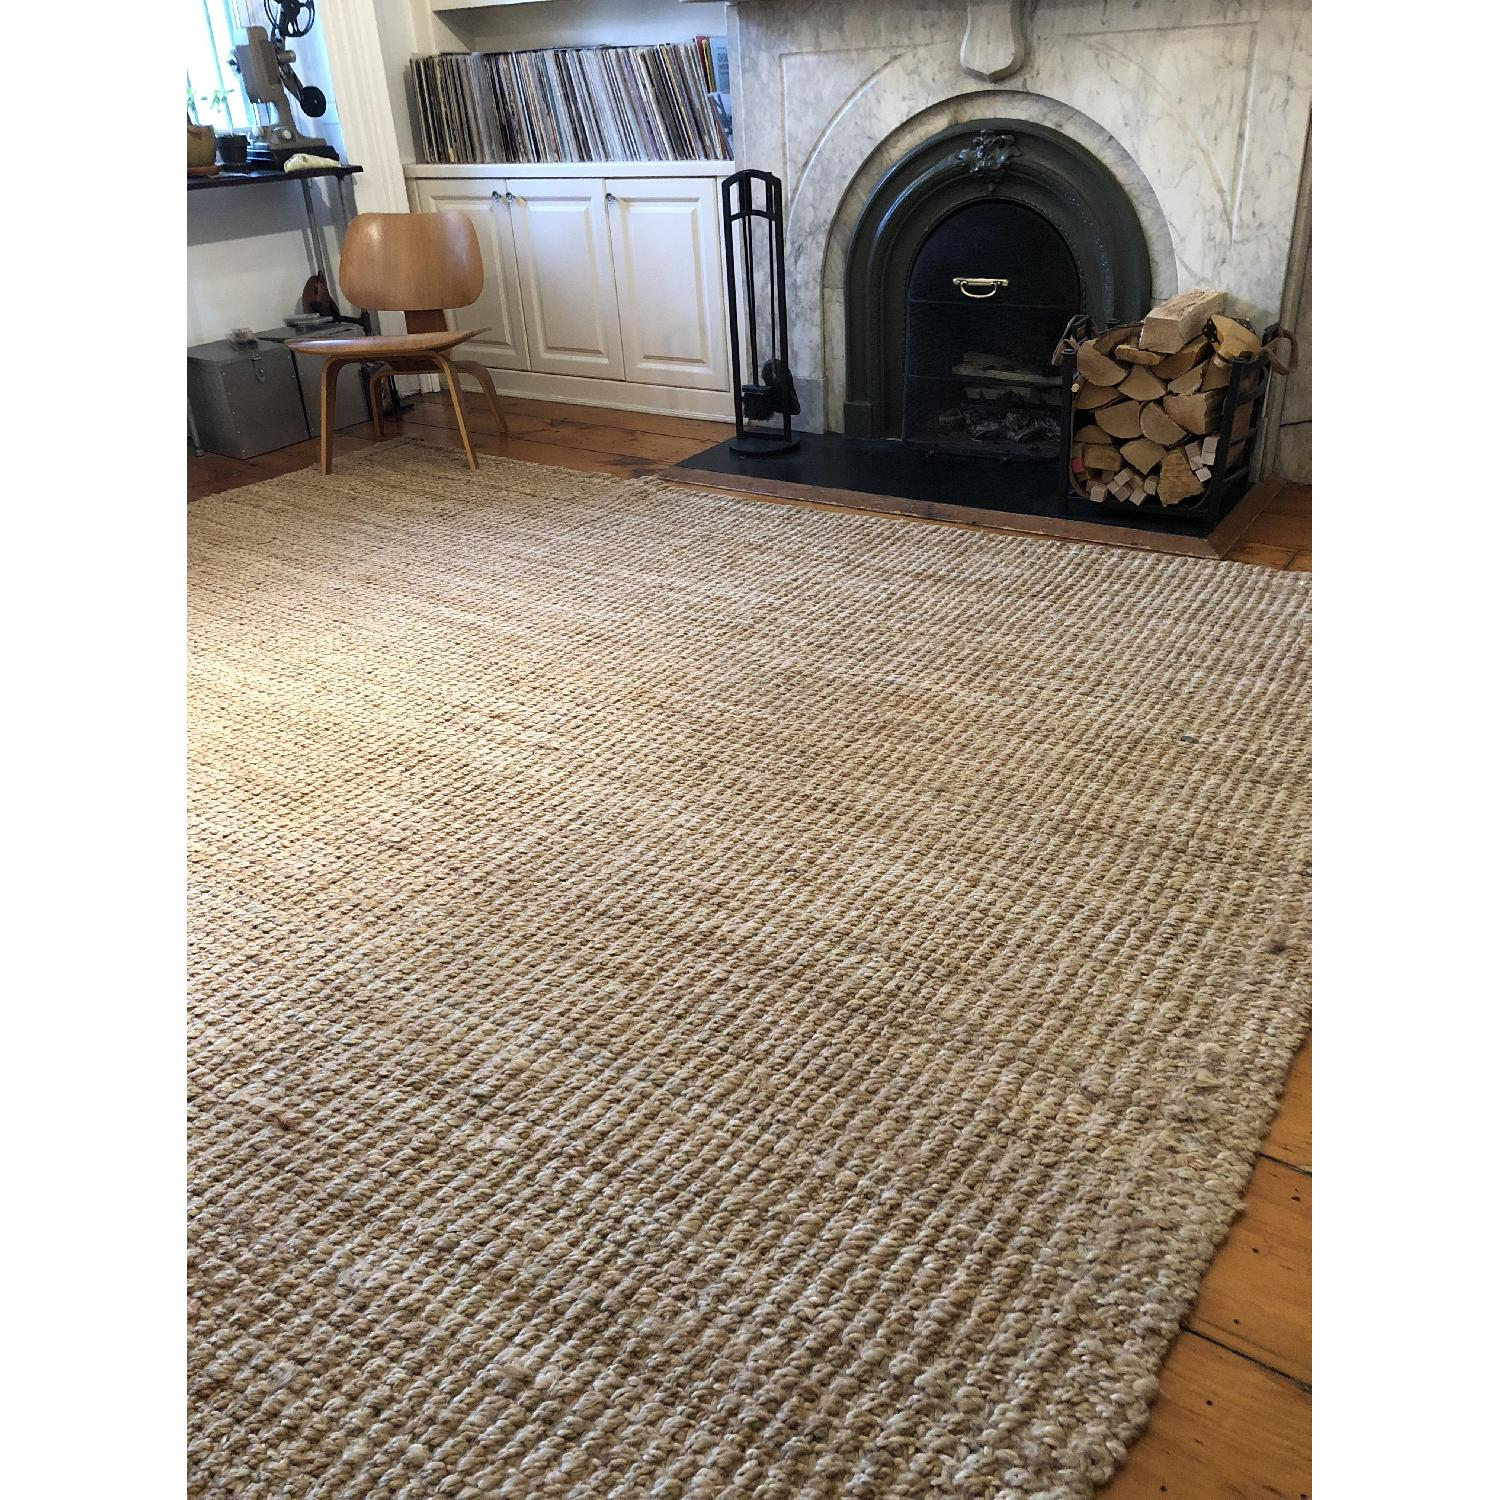 West Elm Jute Boucle Rug in Flax-1